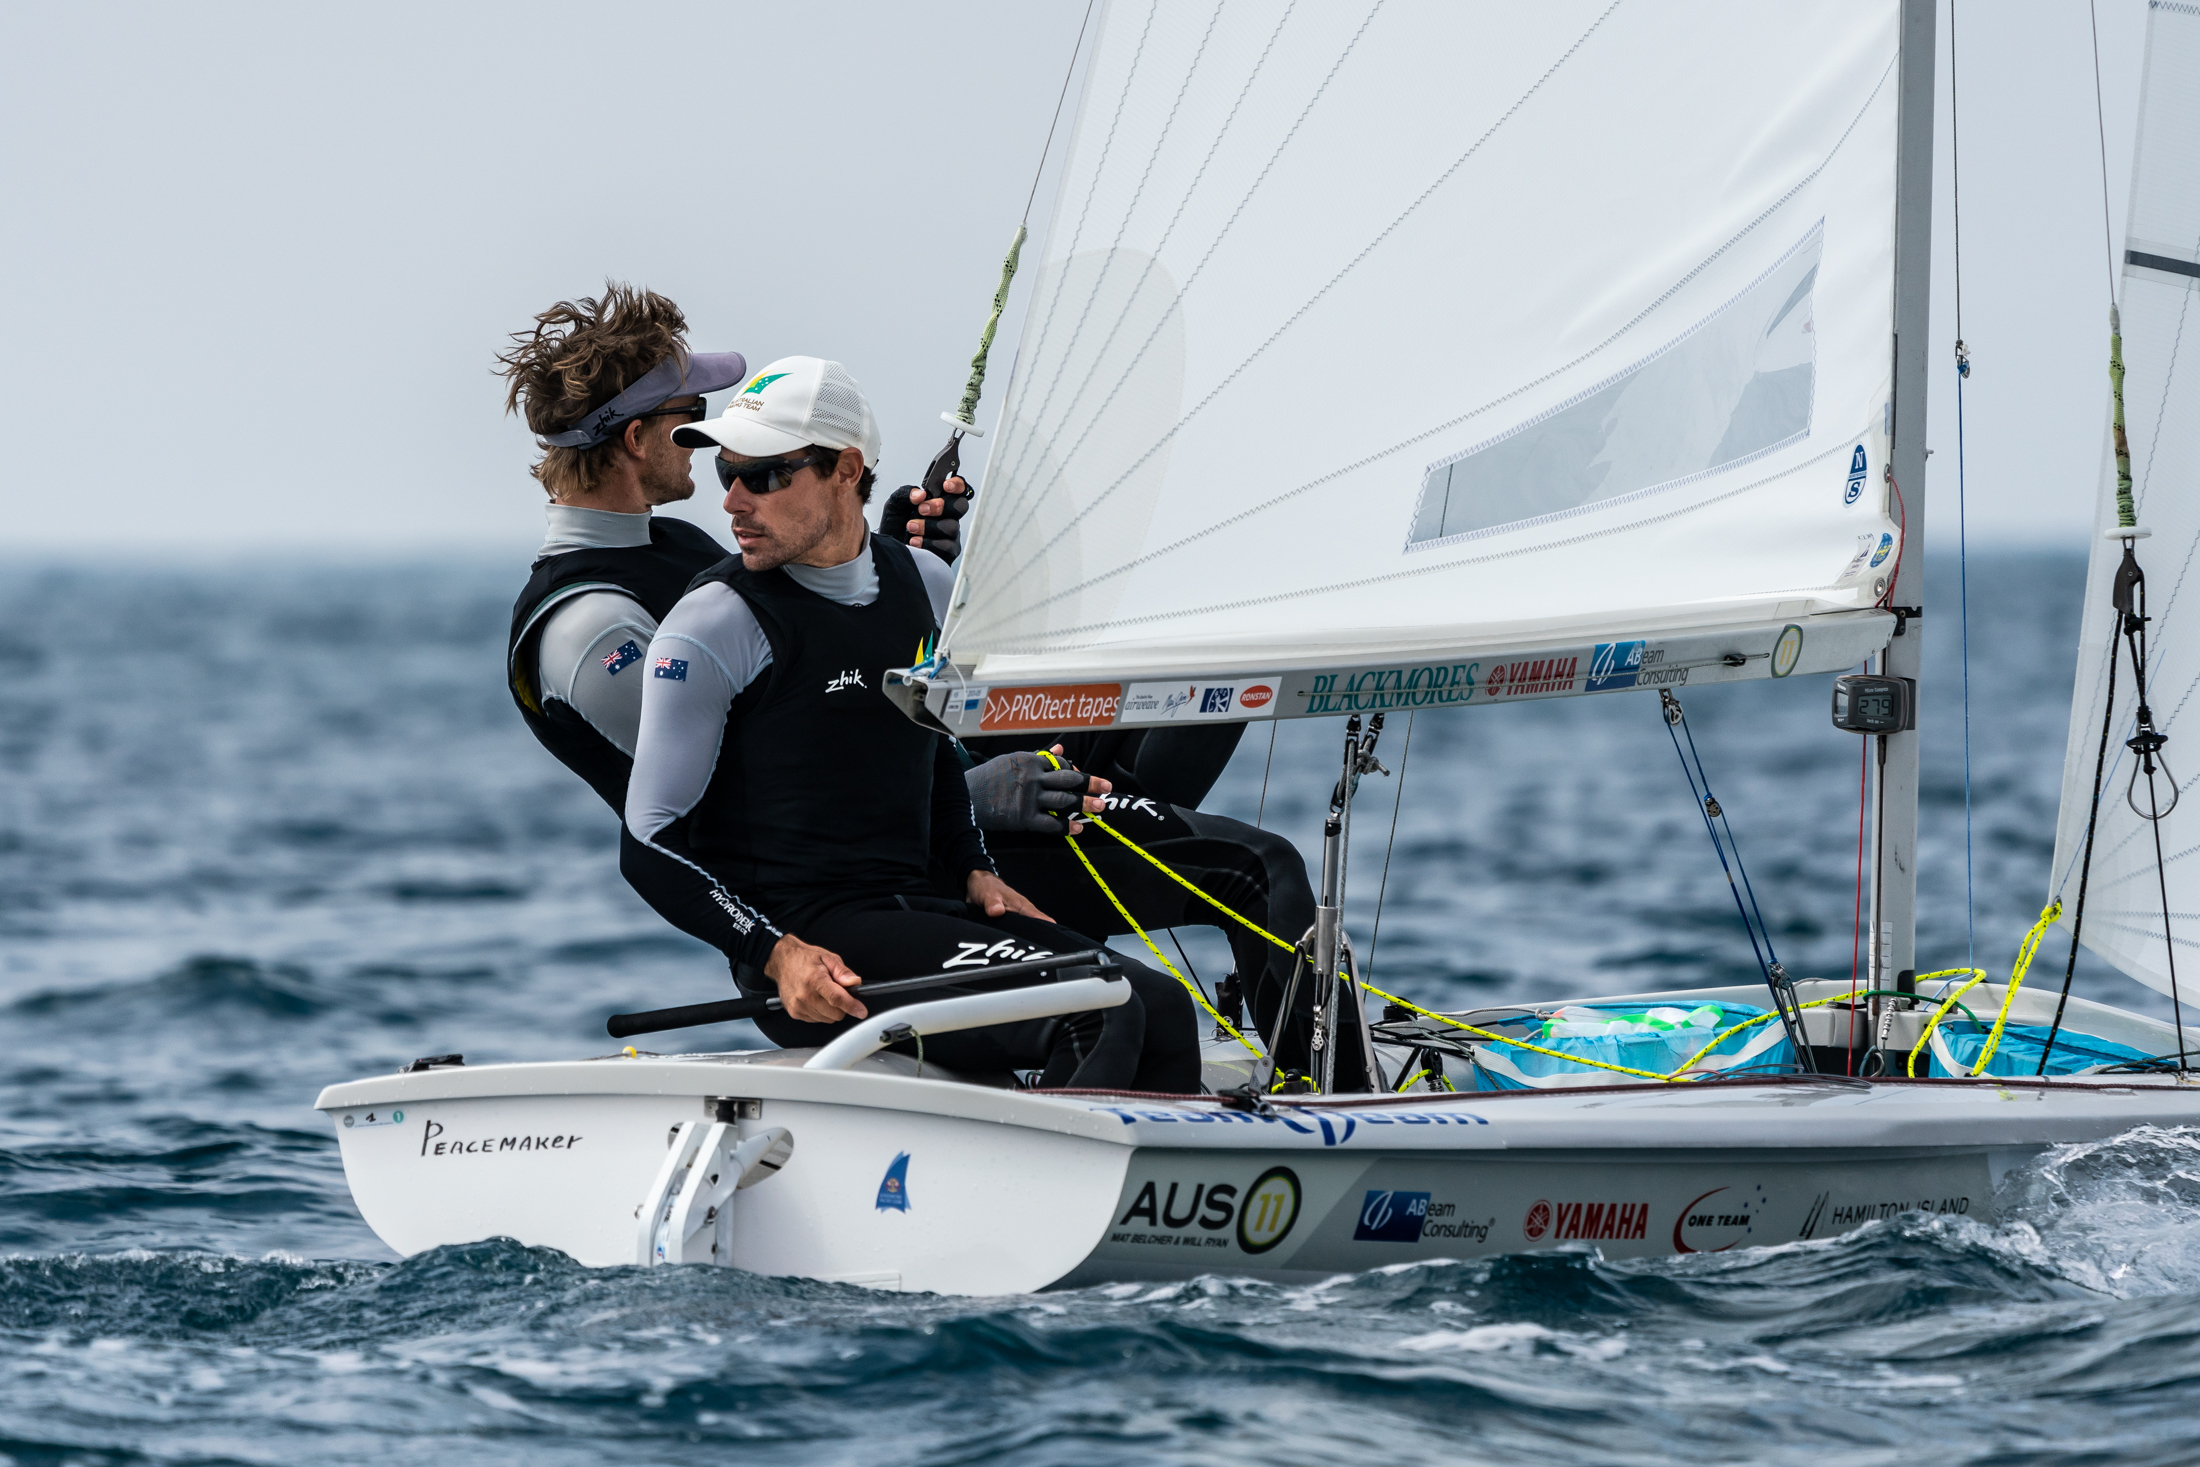 470 sailors Mat Belcher and Will Ryan repping the Zhik gear while sailing